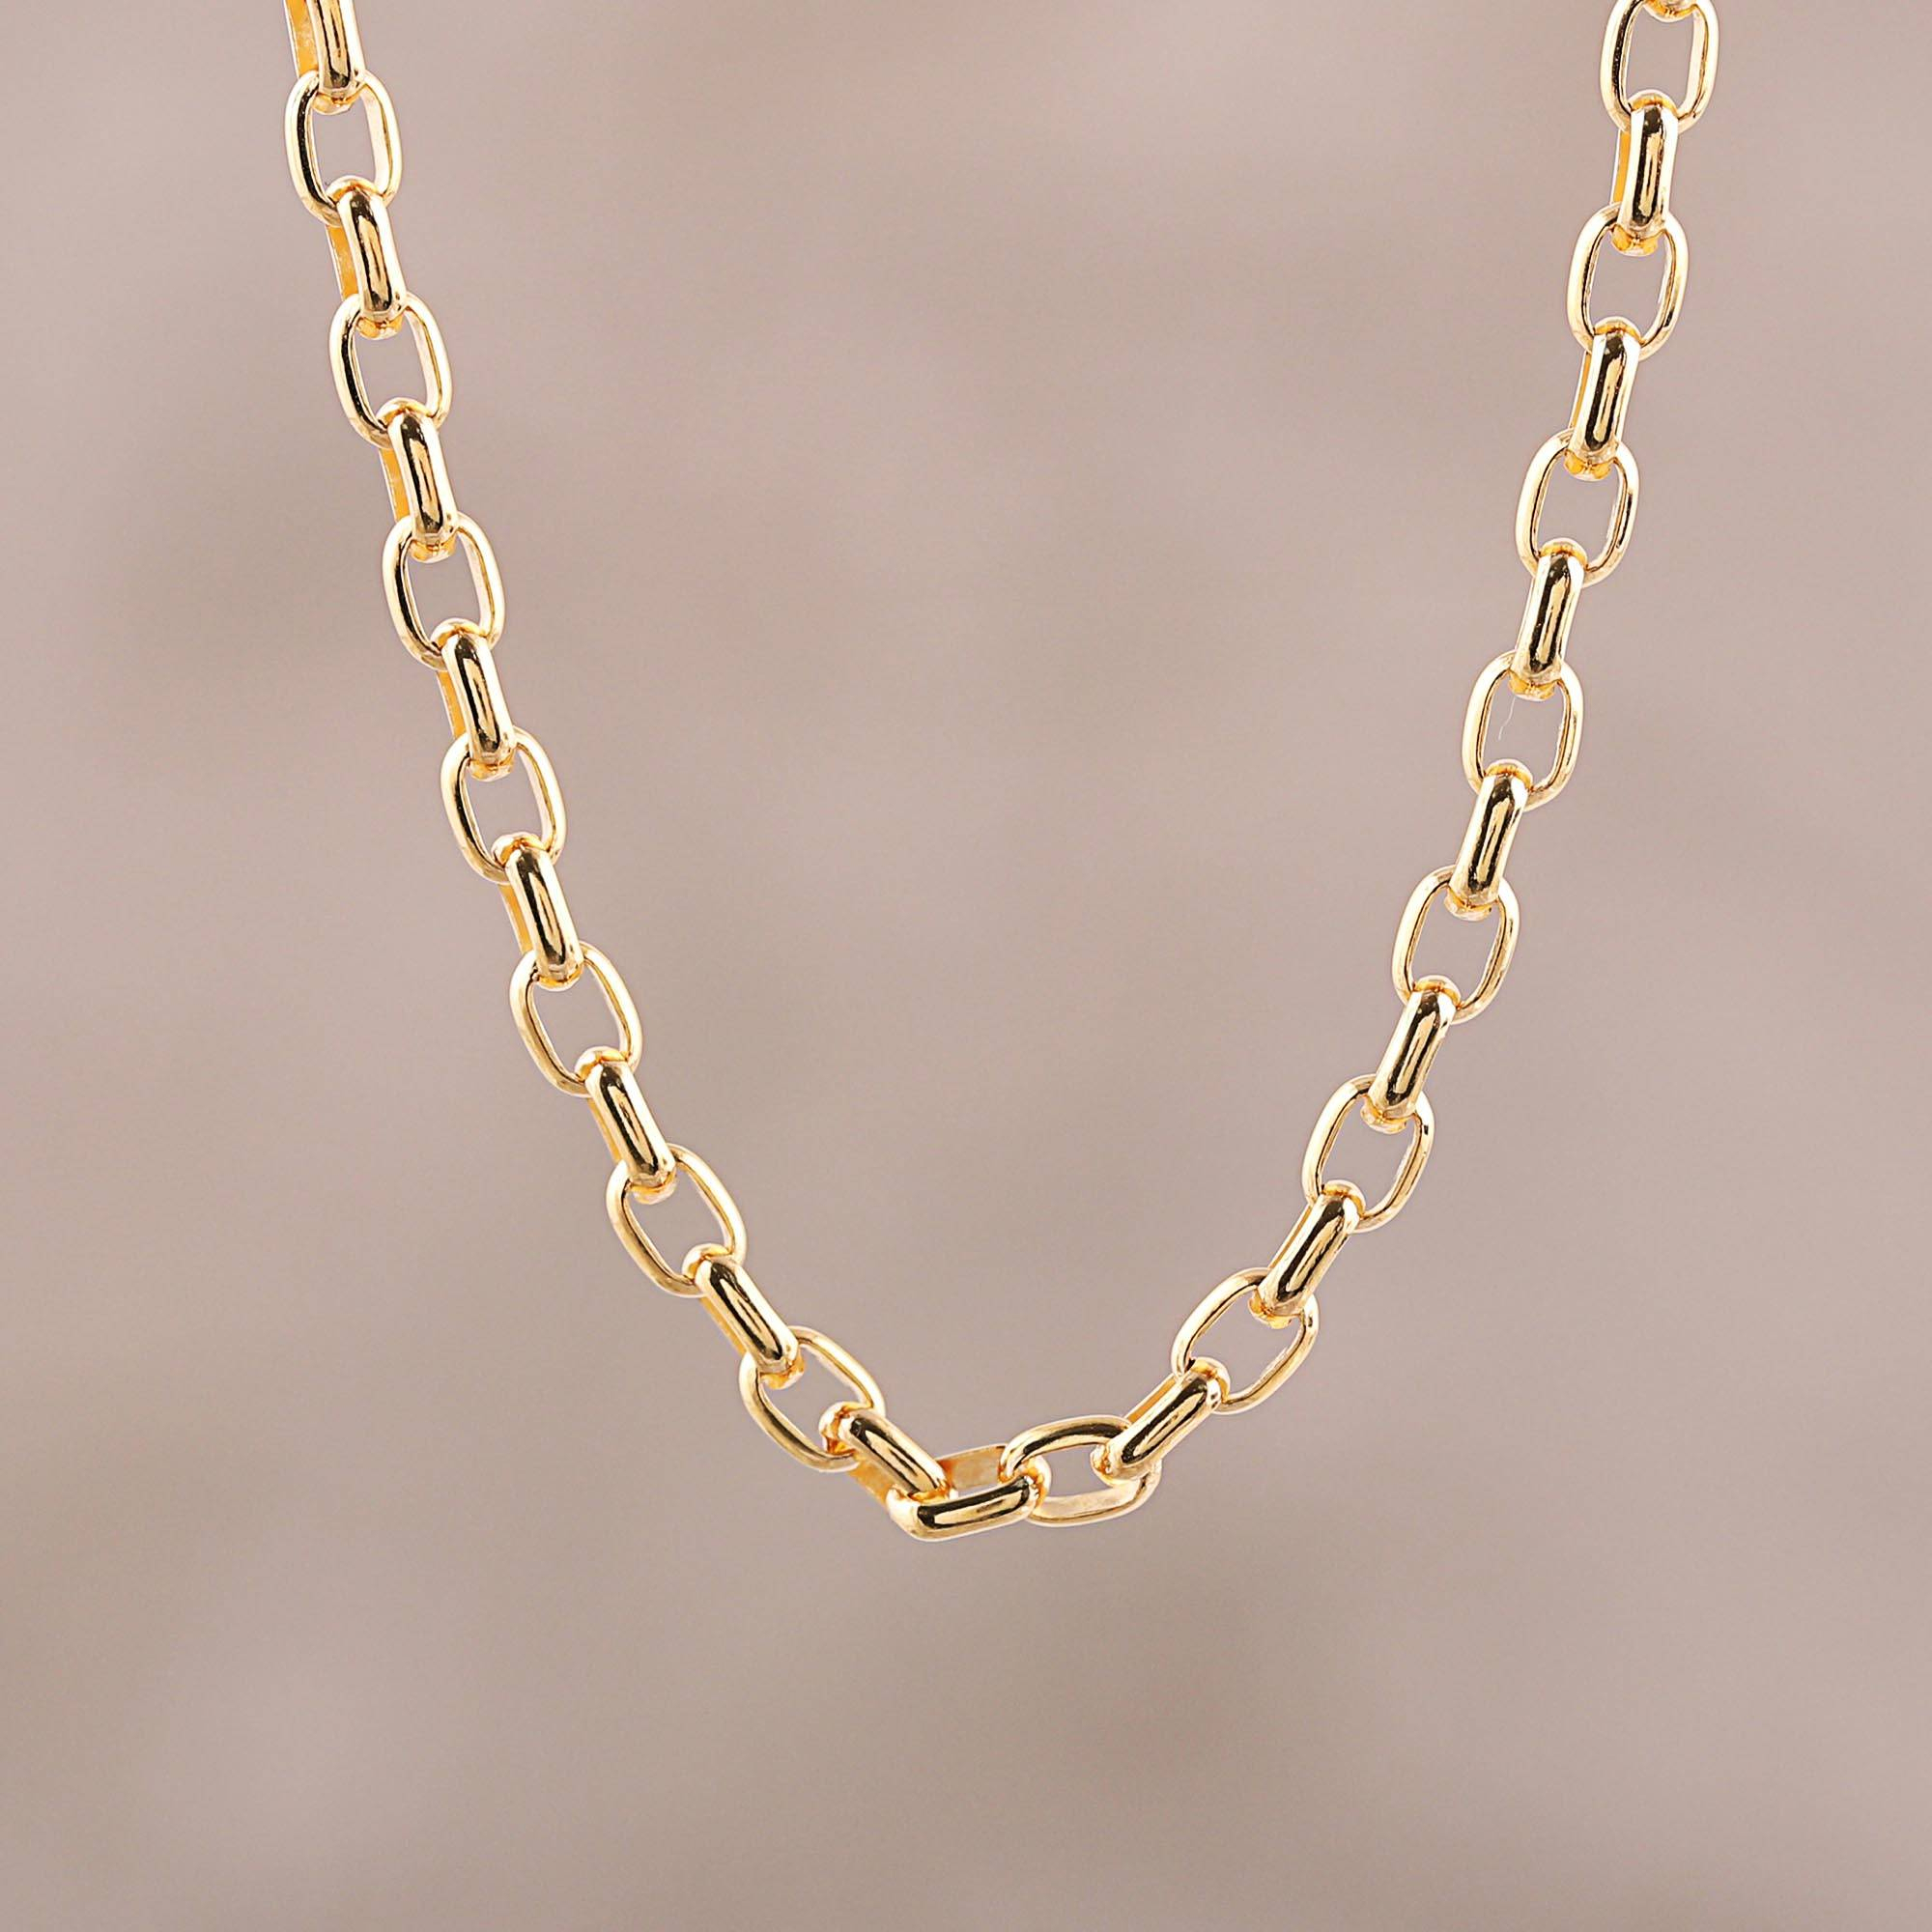 22k Gold Plated Sterling Silver Chain Necklace From India, 'classic Gold' In 2020 Classic Cable Chain Necklaces (View 8 of 25)